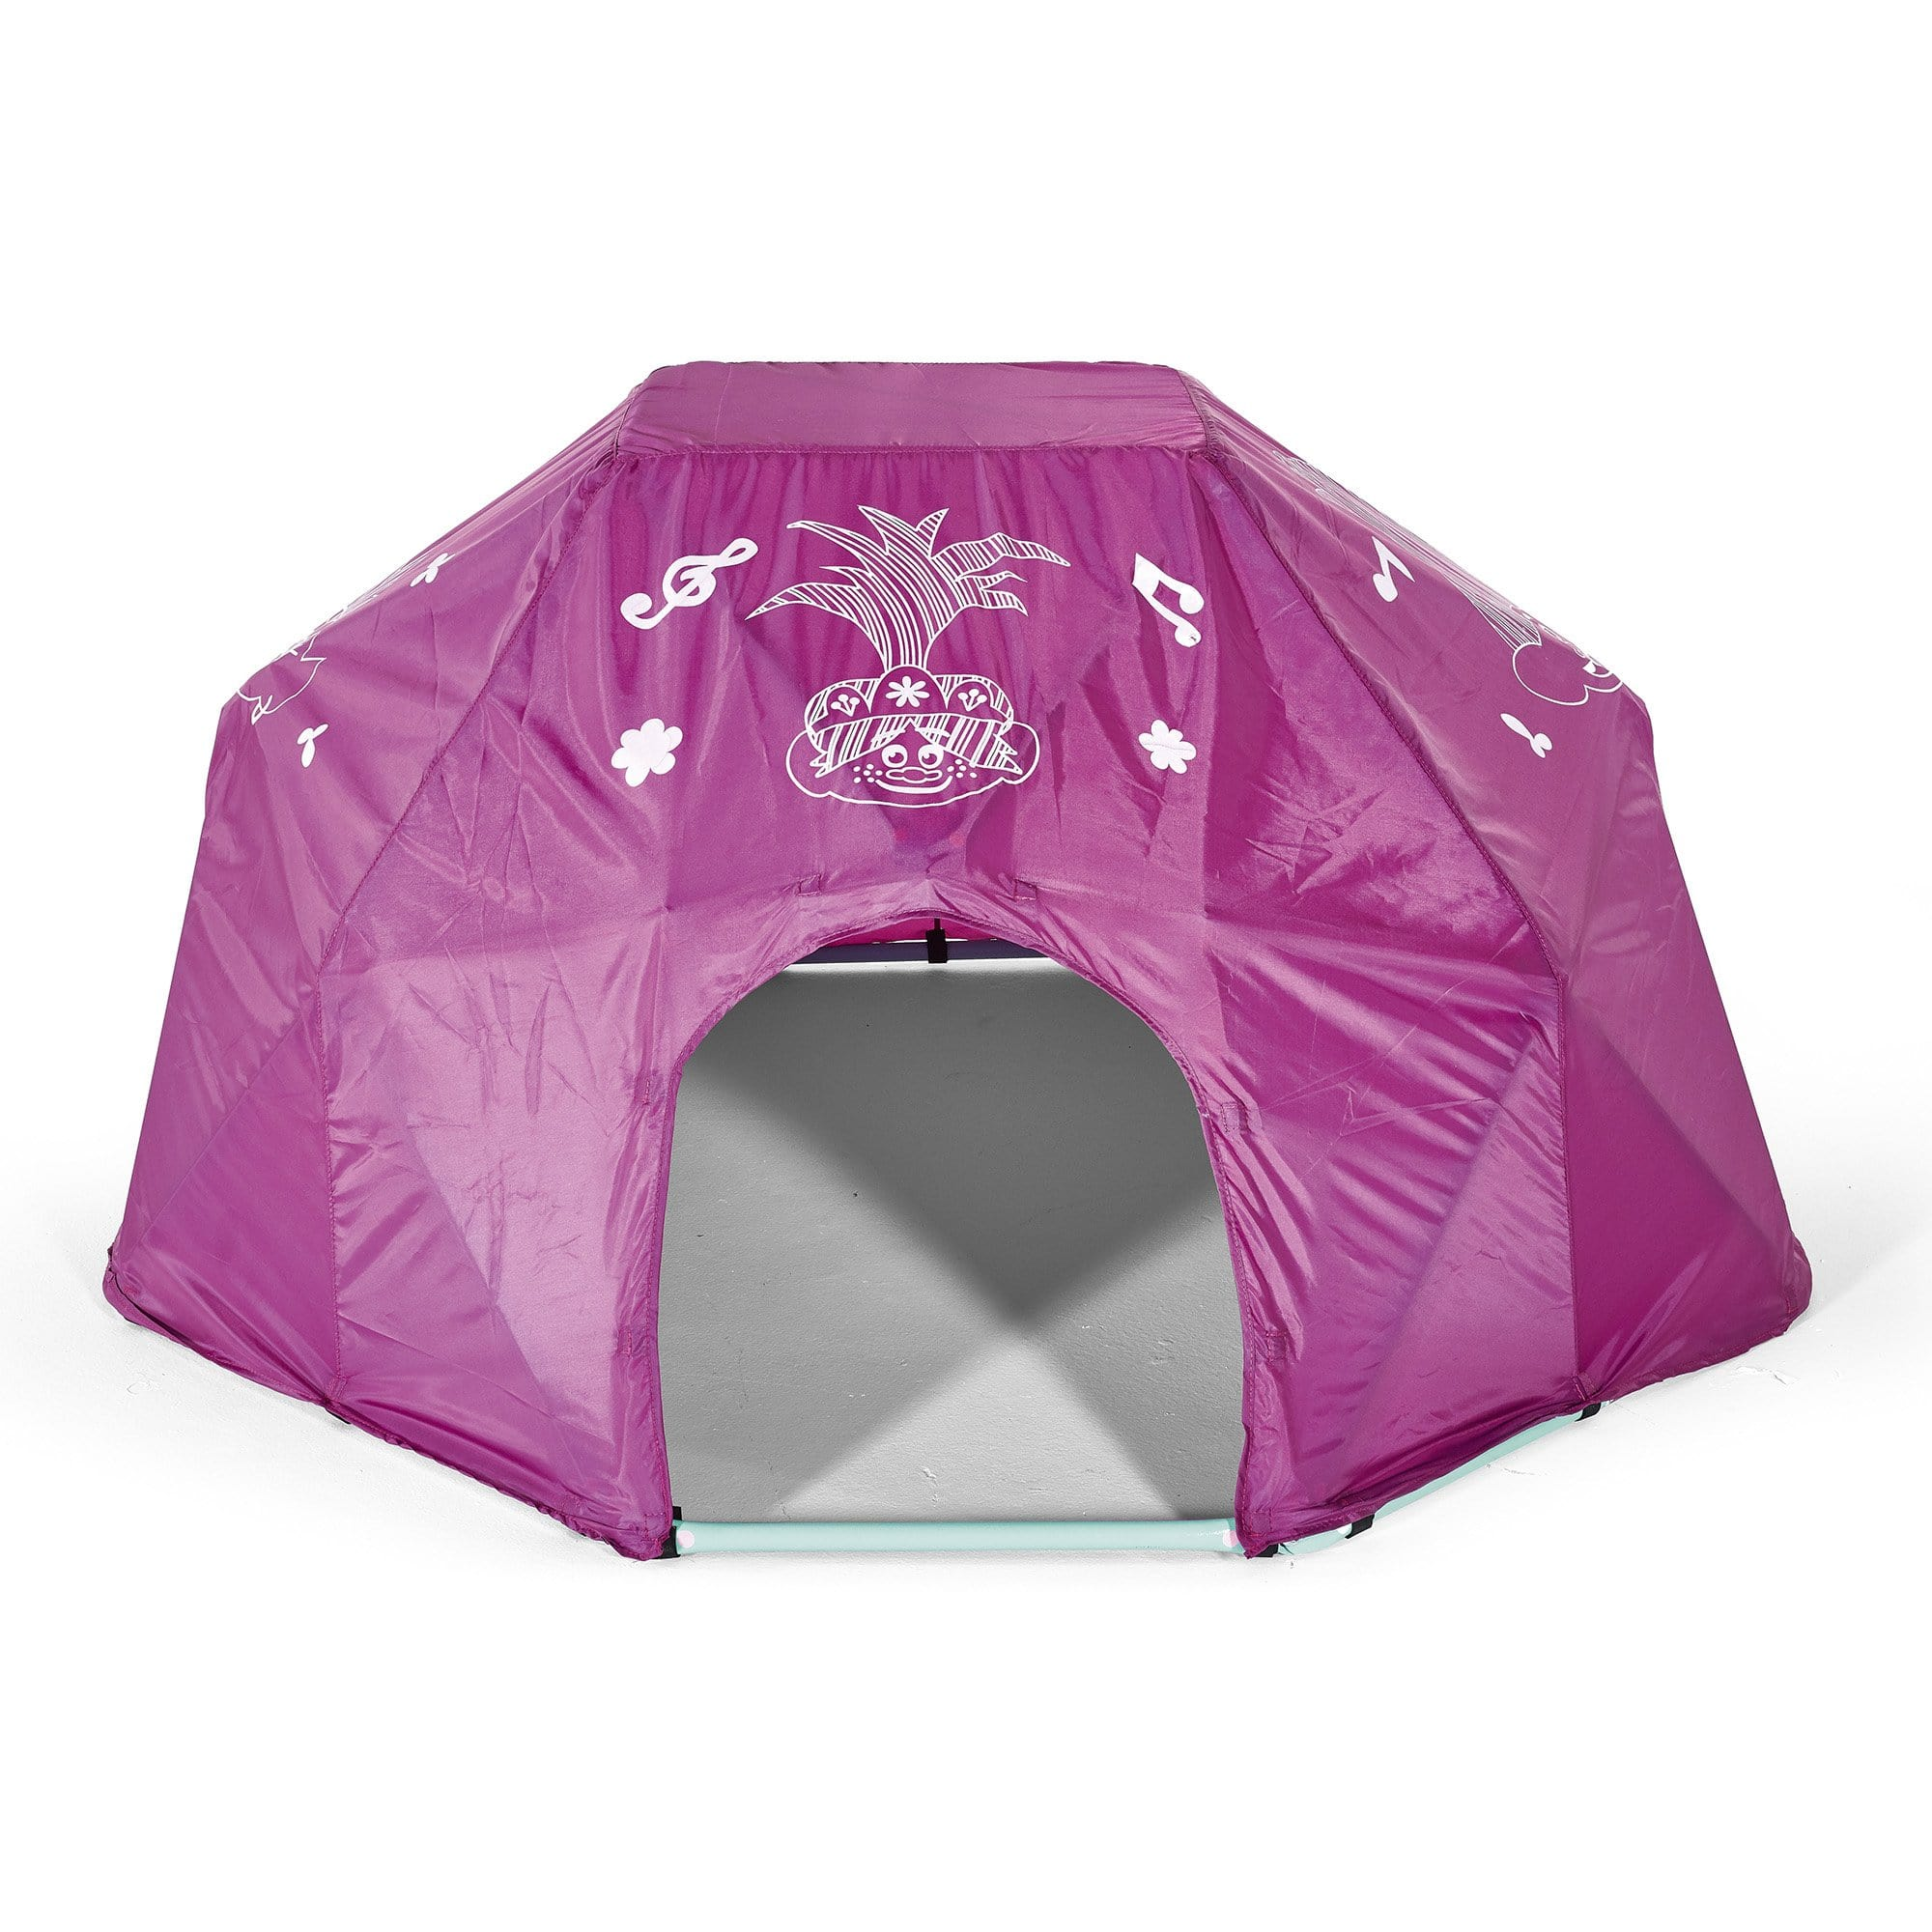 Plum® Trolls 4.5FT Deimos Metal Dome  with sound